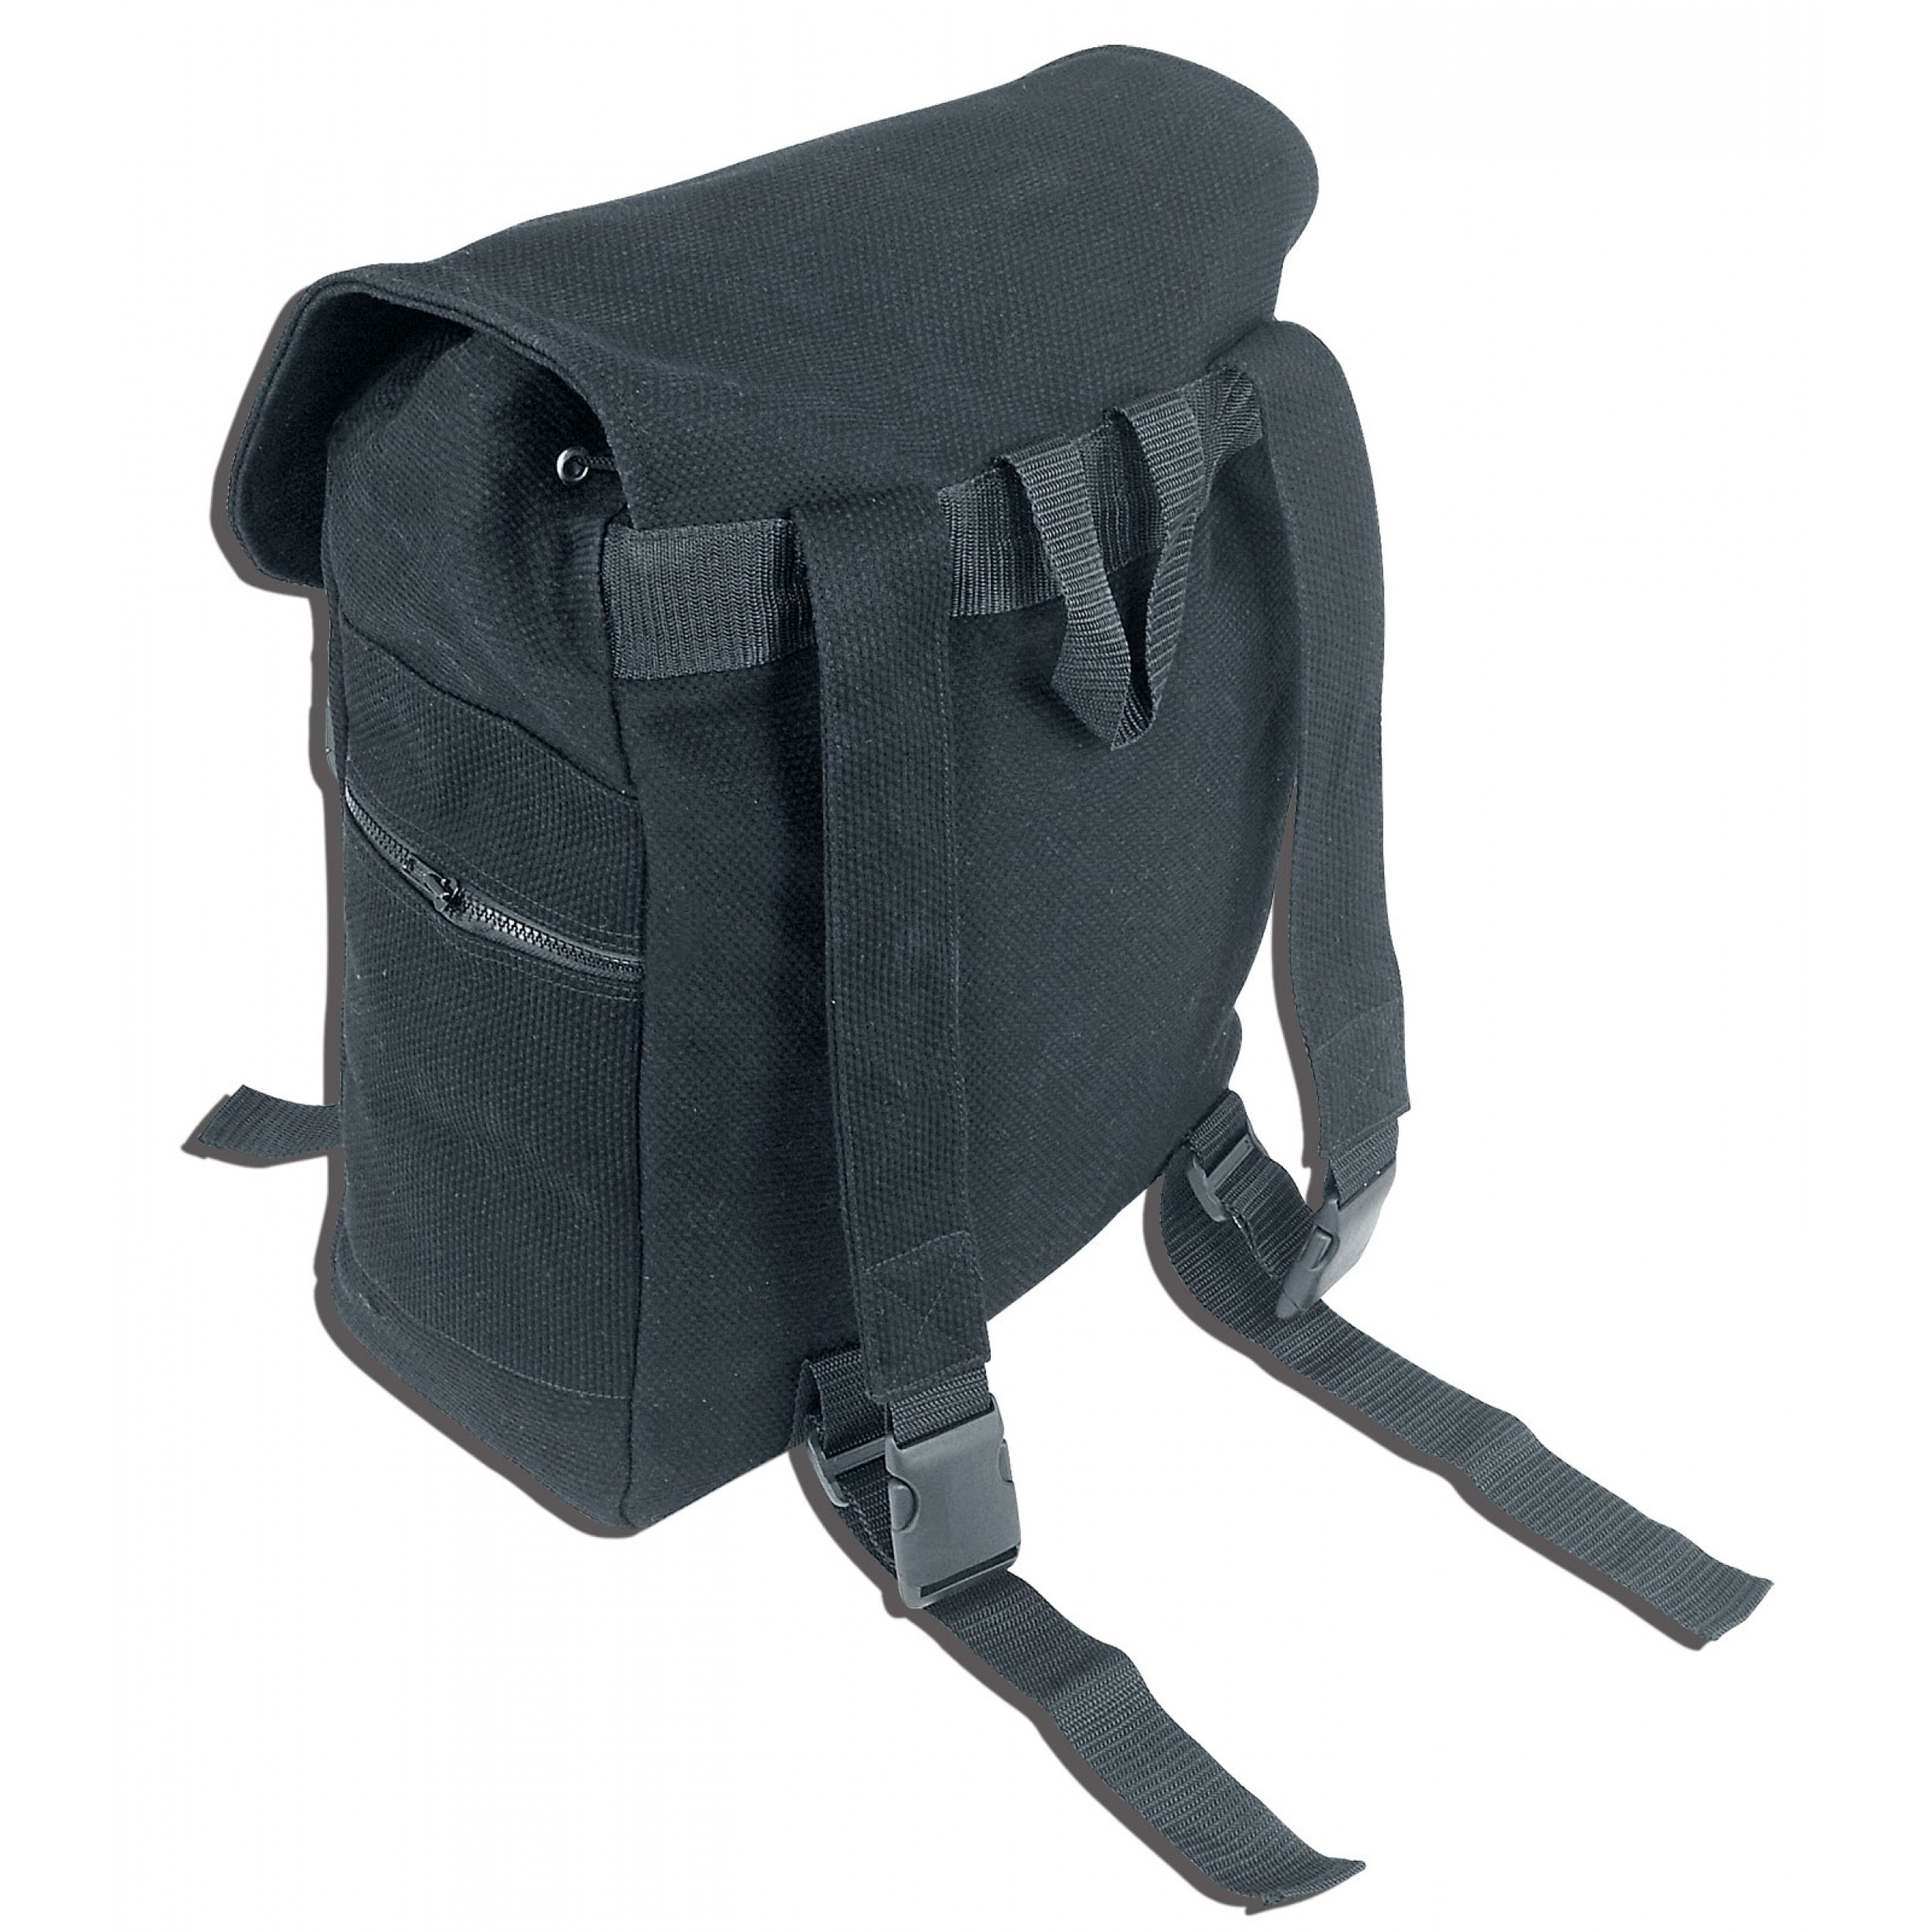 Jiu-Jitsu Bag Black #3500